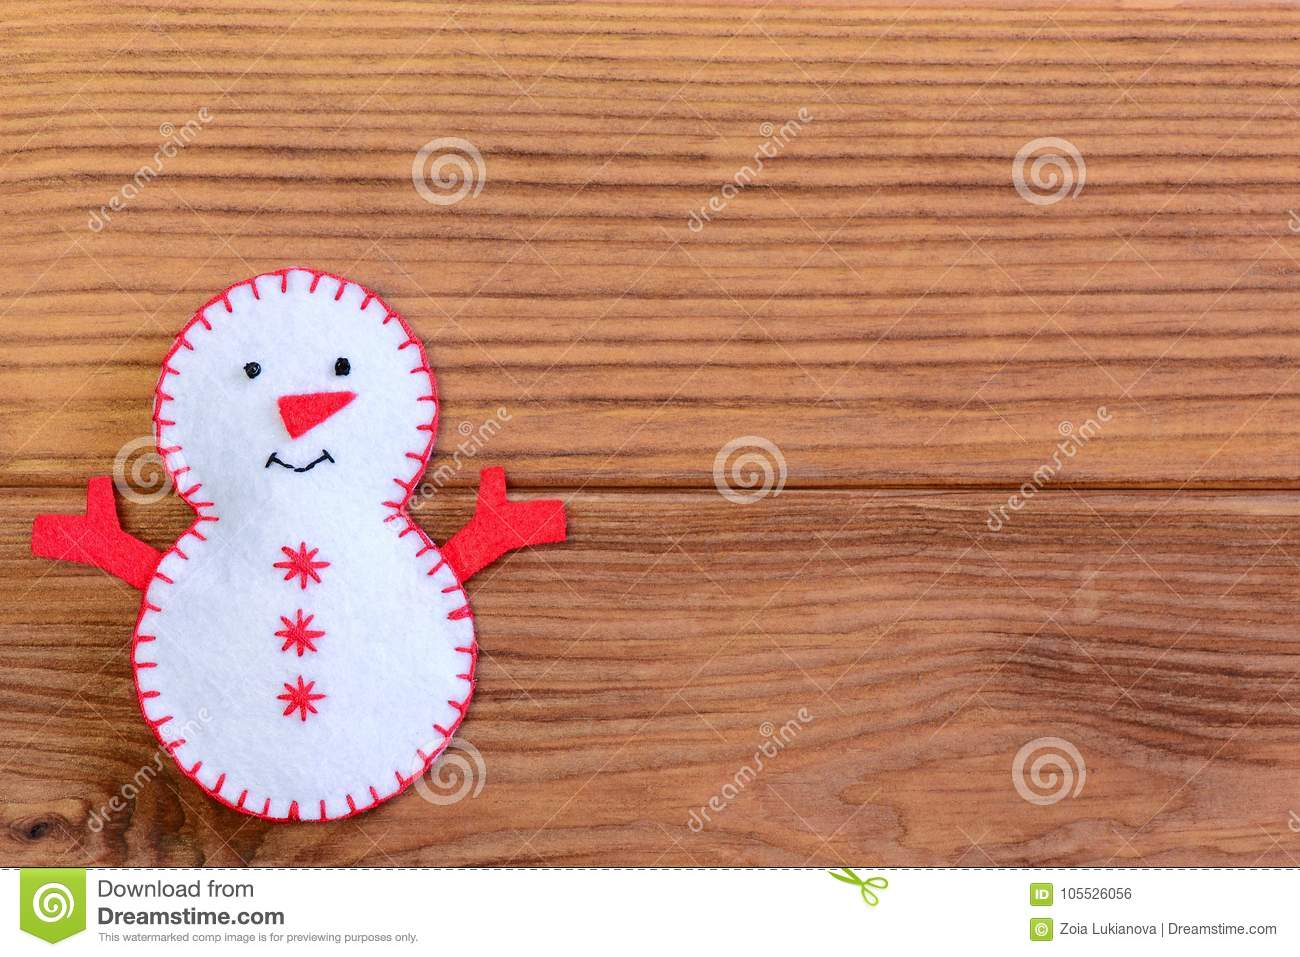 Merry Christmas Background Funny Christmas Snowman Decoration On A